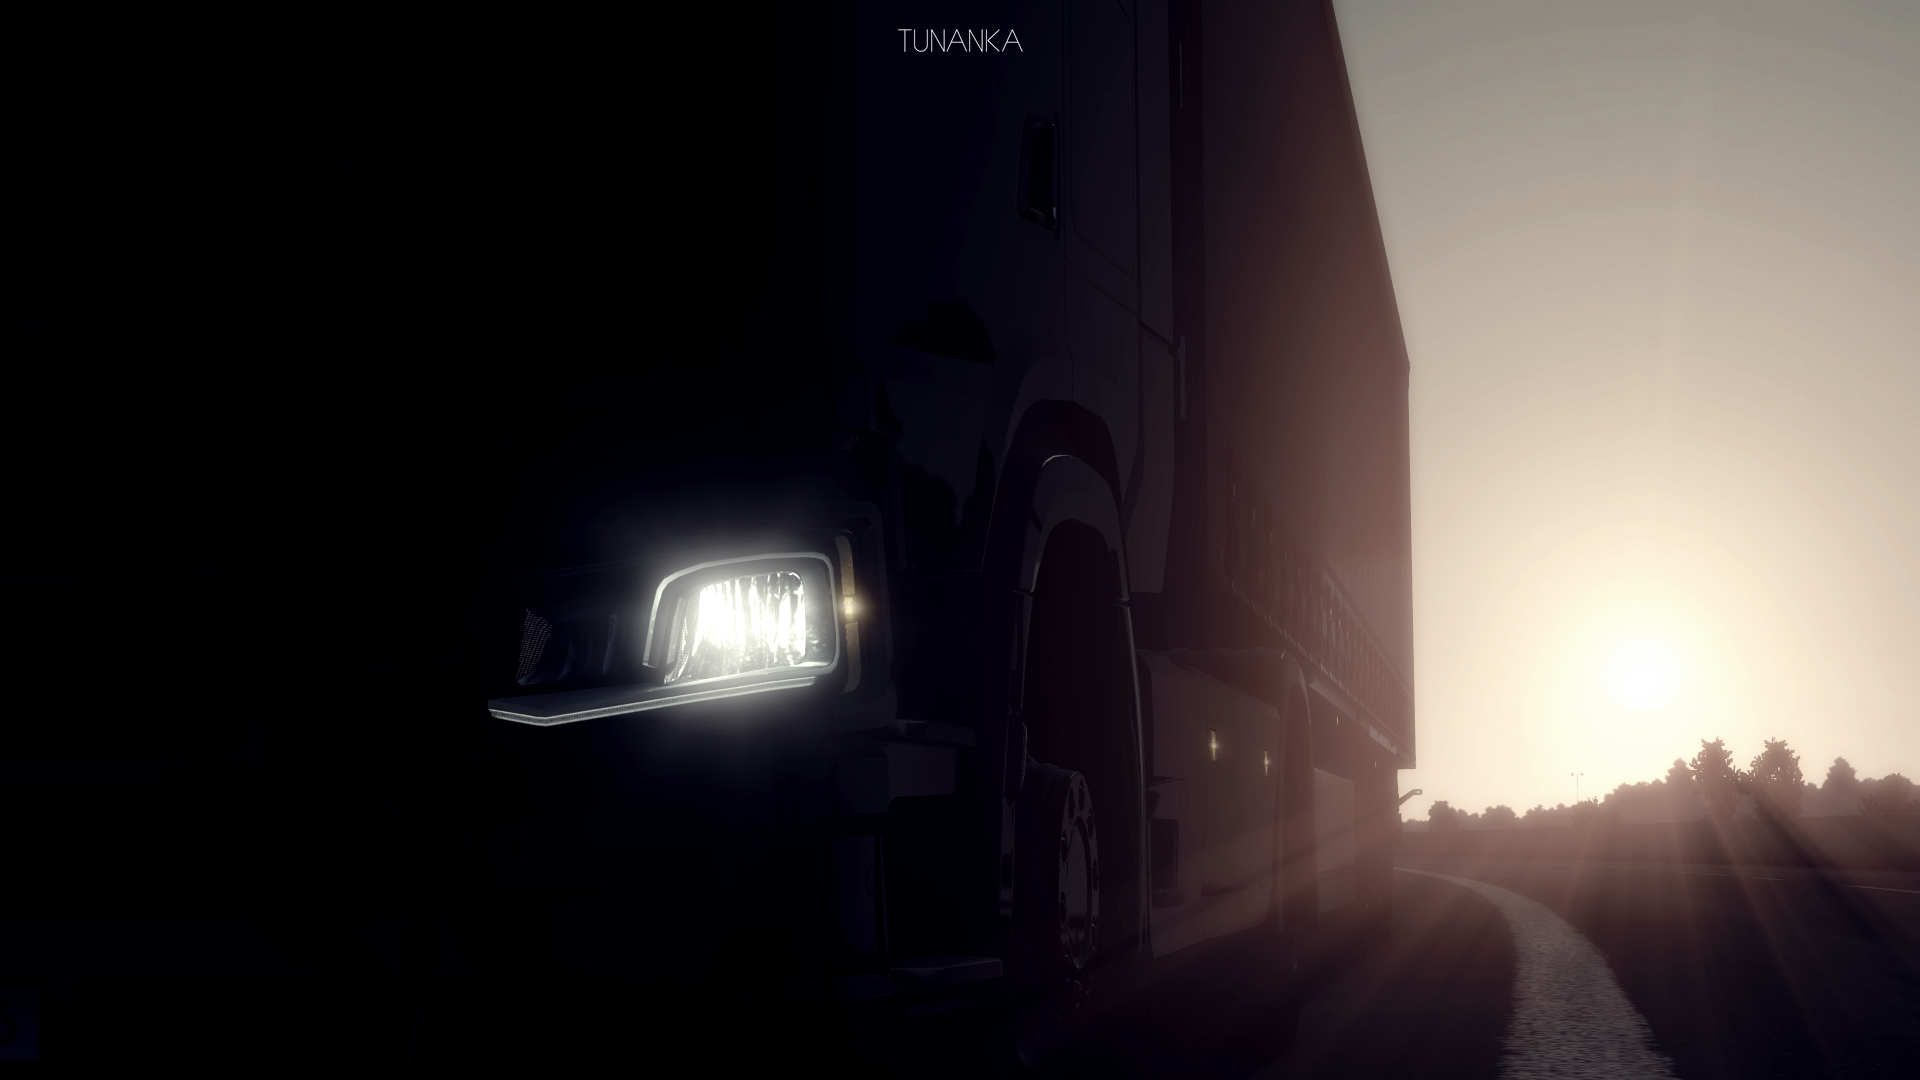 ets2-20181229-180117-00.png